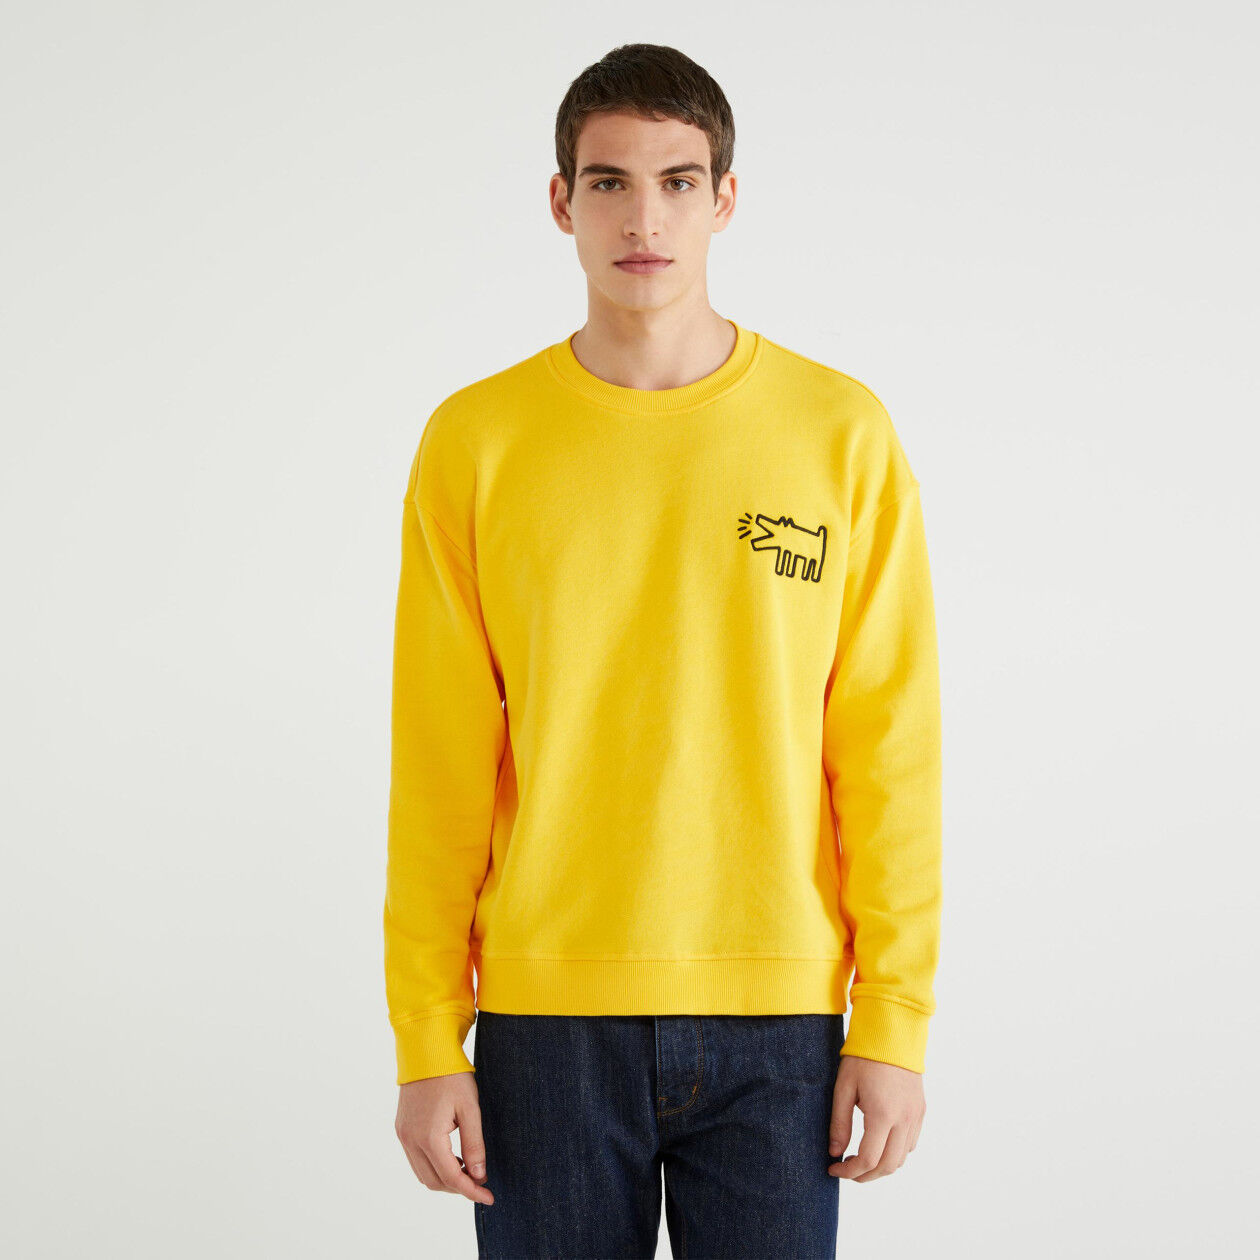 """Keith Haring"" crew neck sweatshirt"